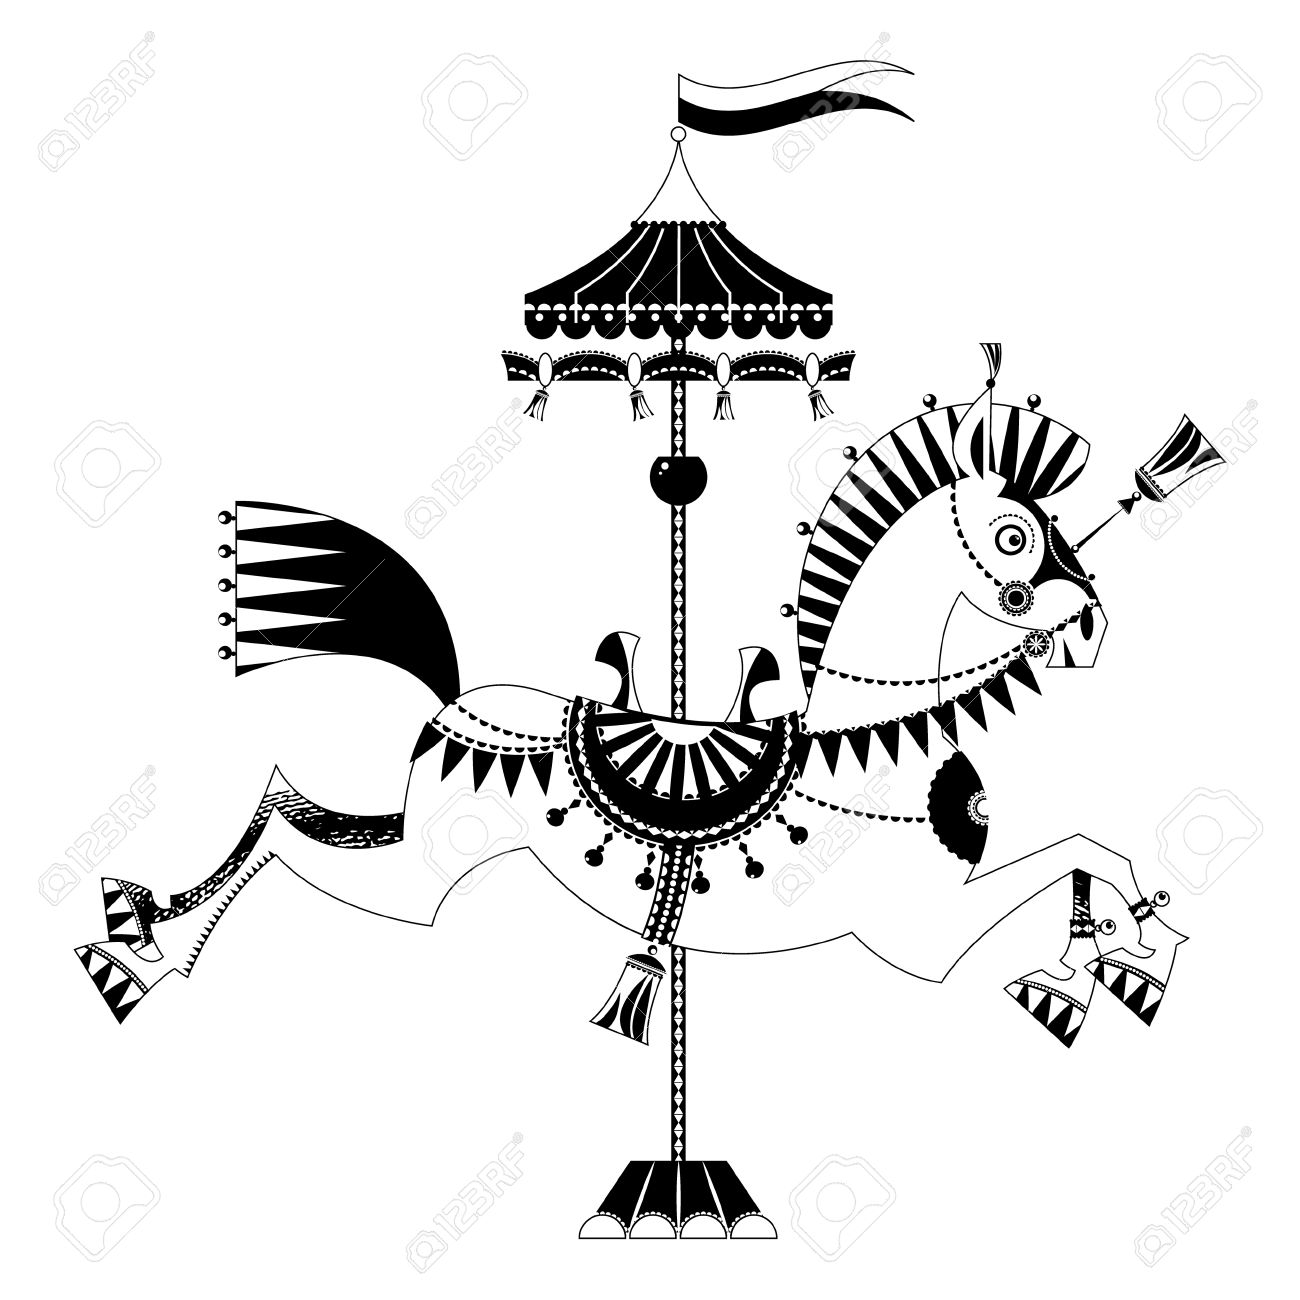 Vintage Carousel Horse Black And White Royalty Free Cliparts Vectors And Stock Illustration Image 46954504